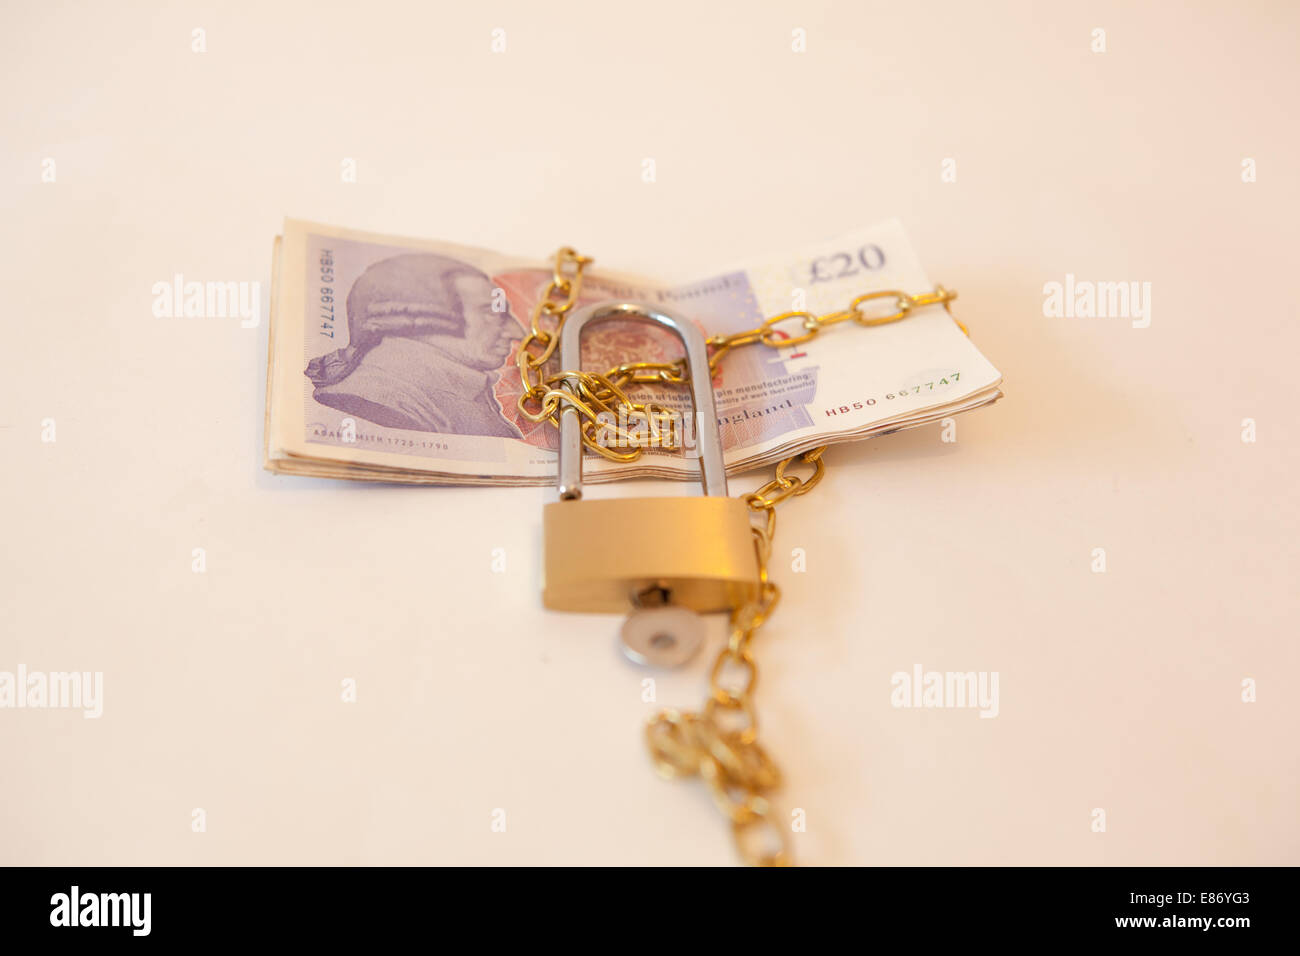 multiple 20 notes tied up - Stock Image